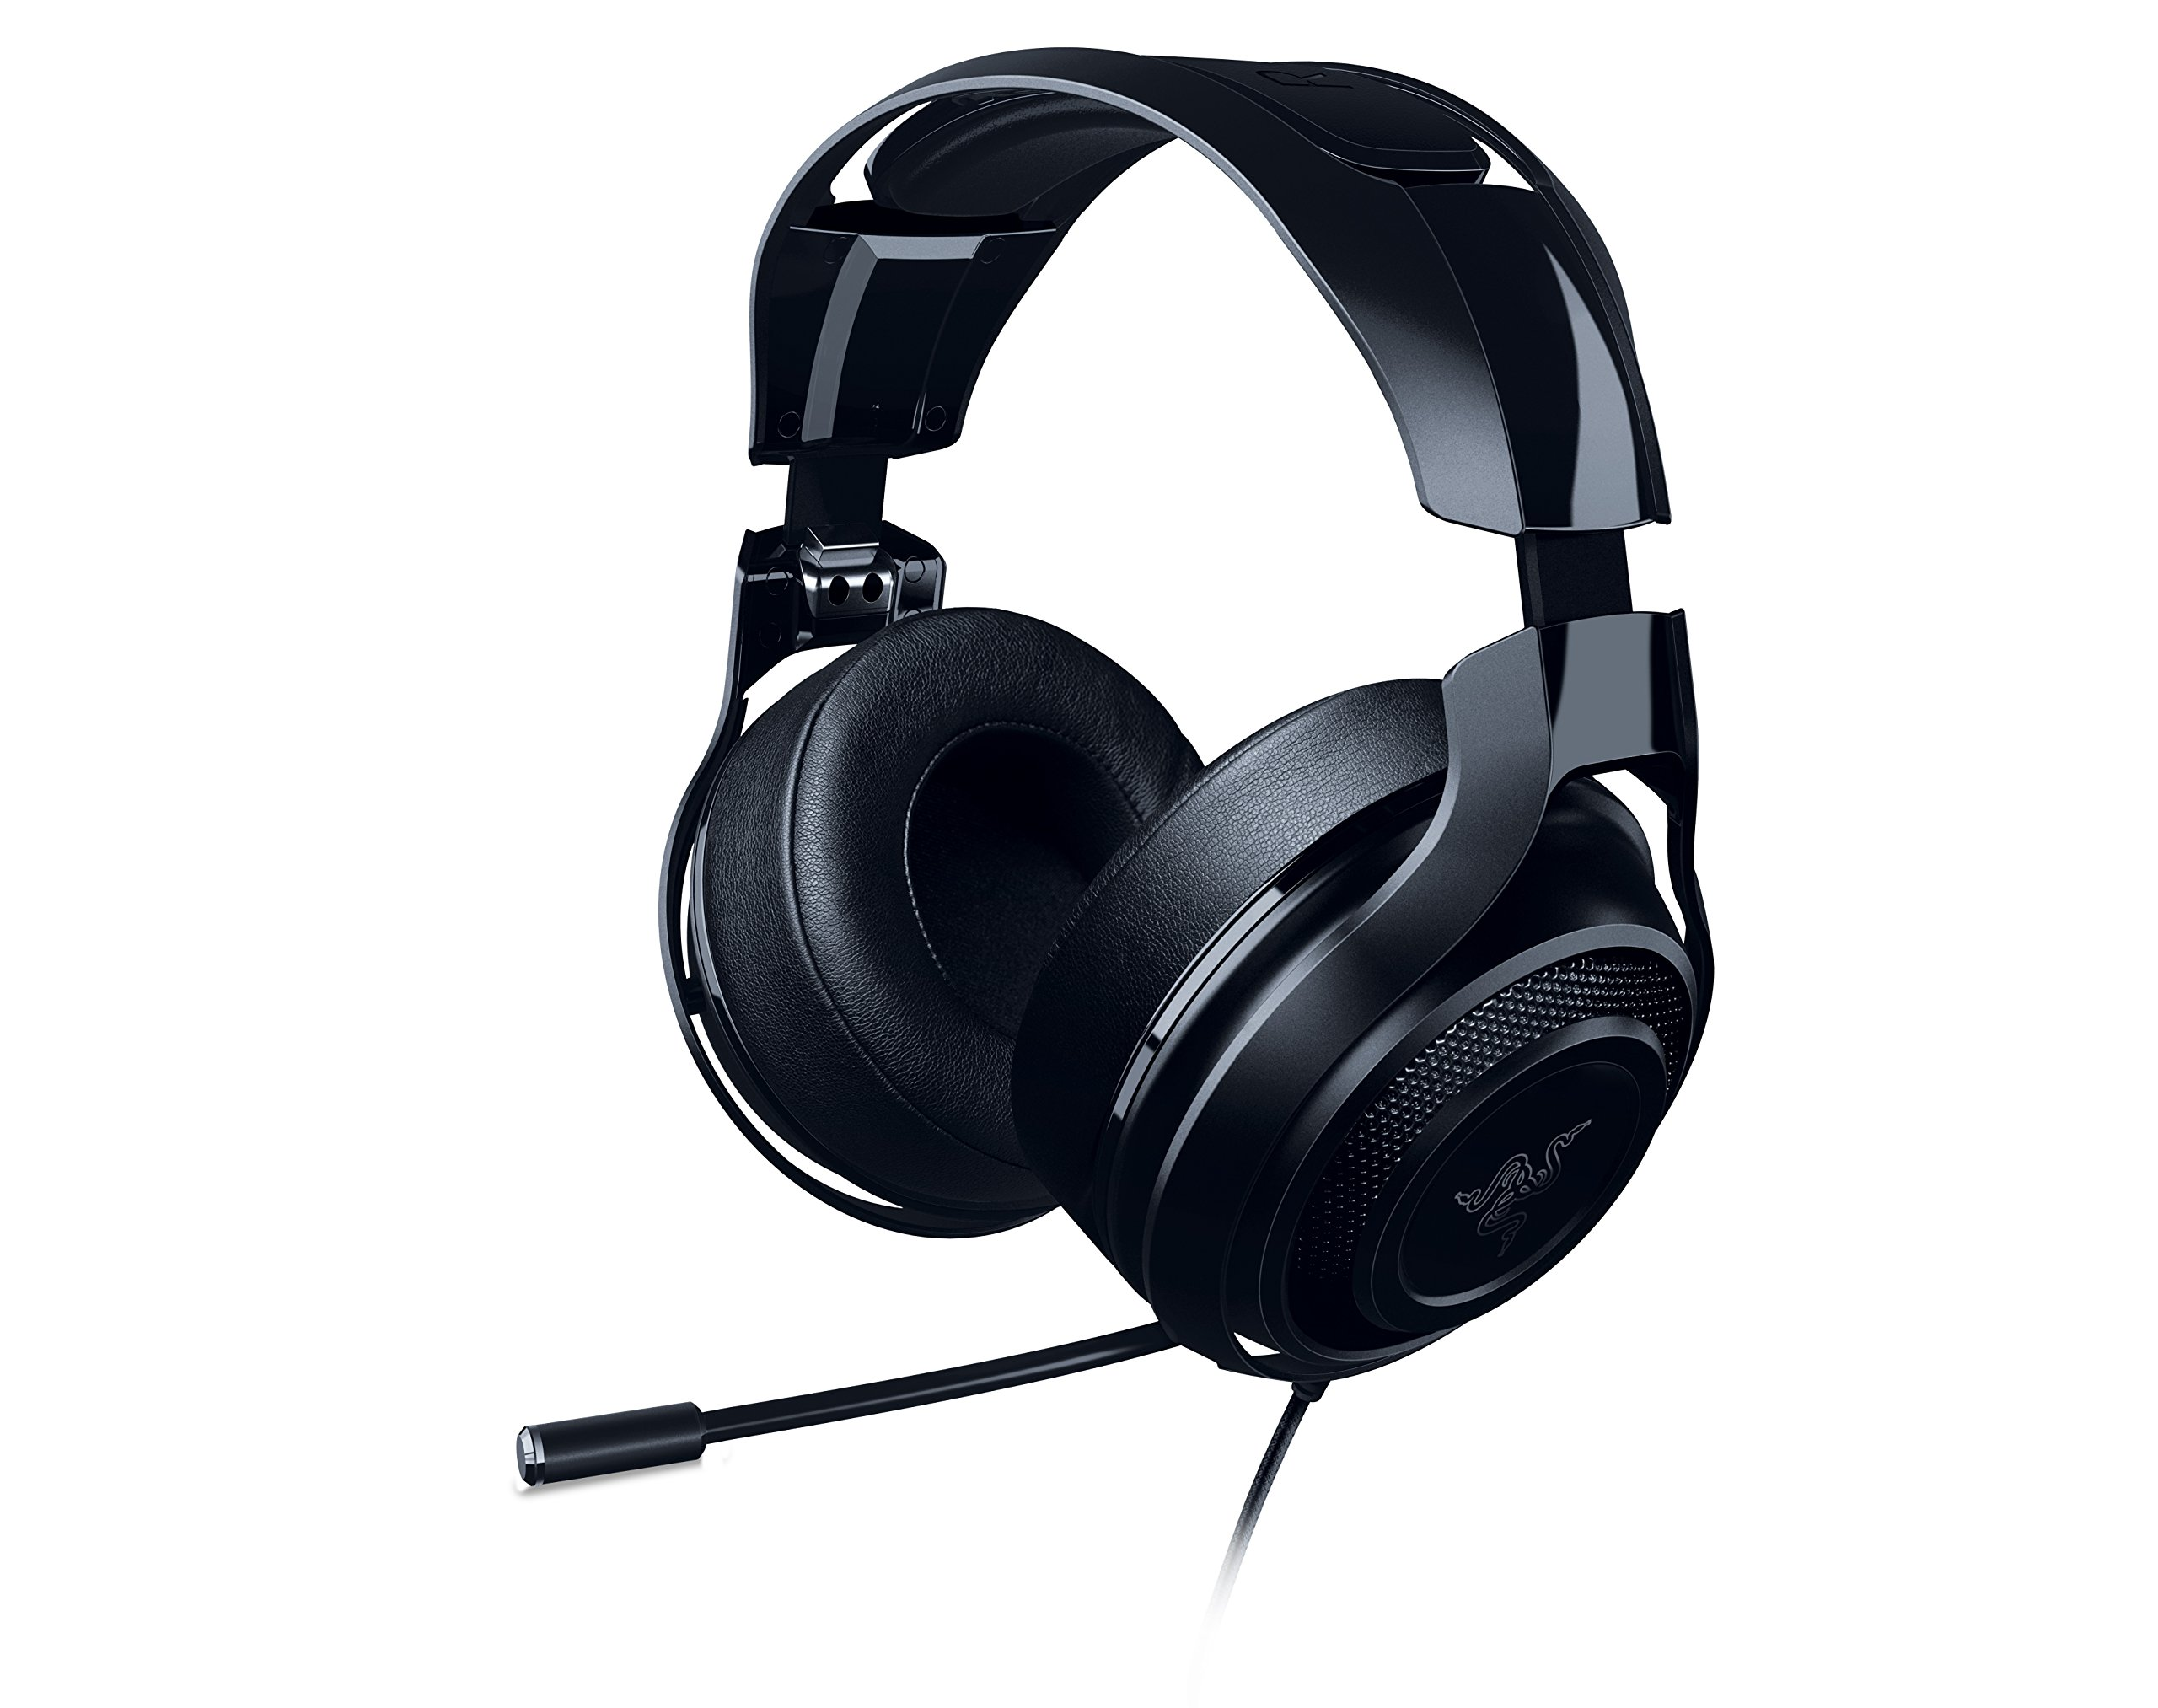 Razer ManO'War - 7.1 Surround Sound Gaming Headset Compatible with PC, Mac, Steam Link, Xbox One and Playstation 4 by Razer